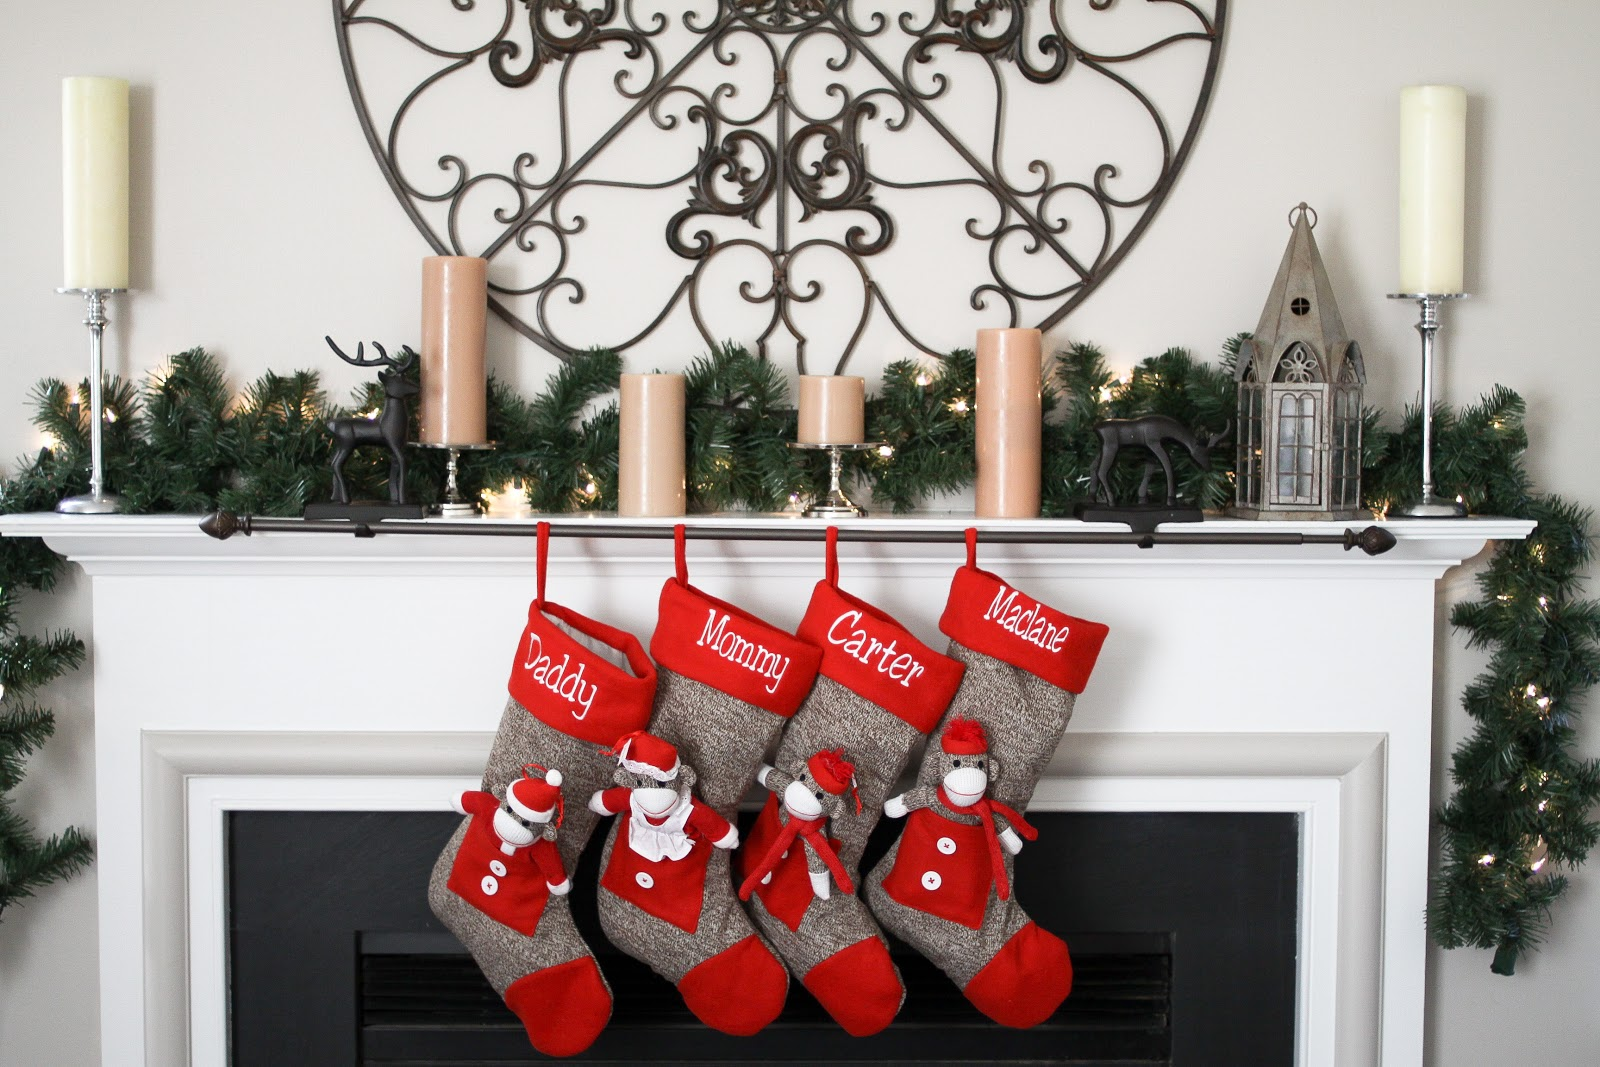 Personalized Christmas Stocking Hangers